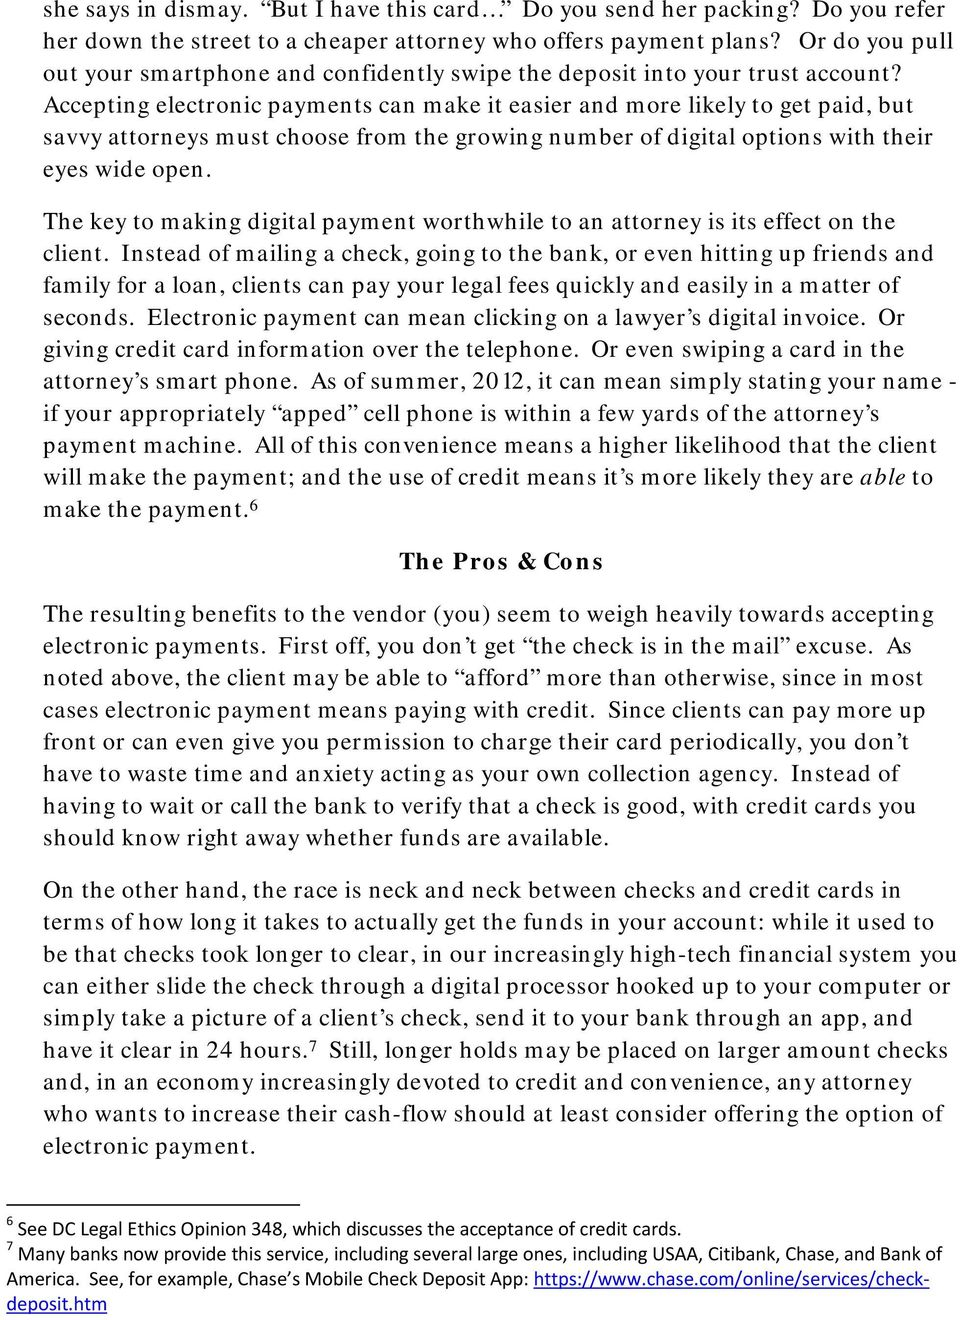 Best Practices In Billing Pdf Wiring Money With Usaa Accepting Electronic Payments Can Make It Easier And More Likely To Get Paid But Savvy